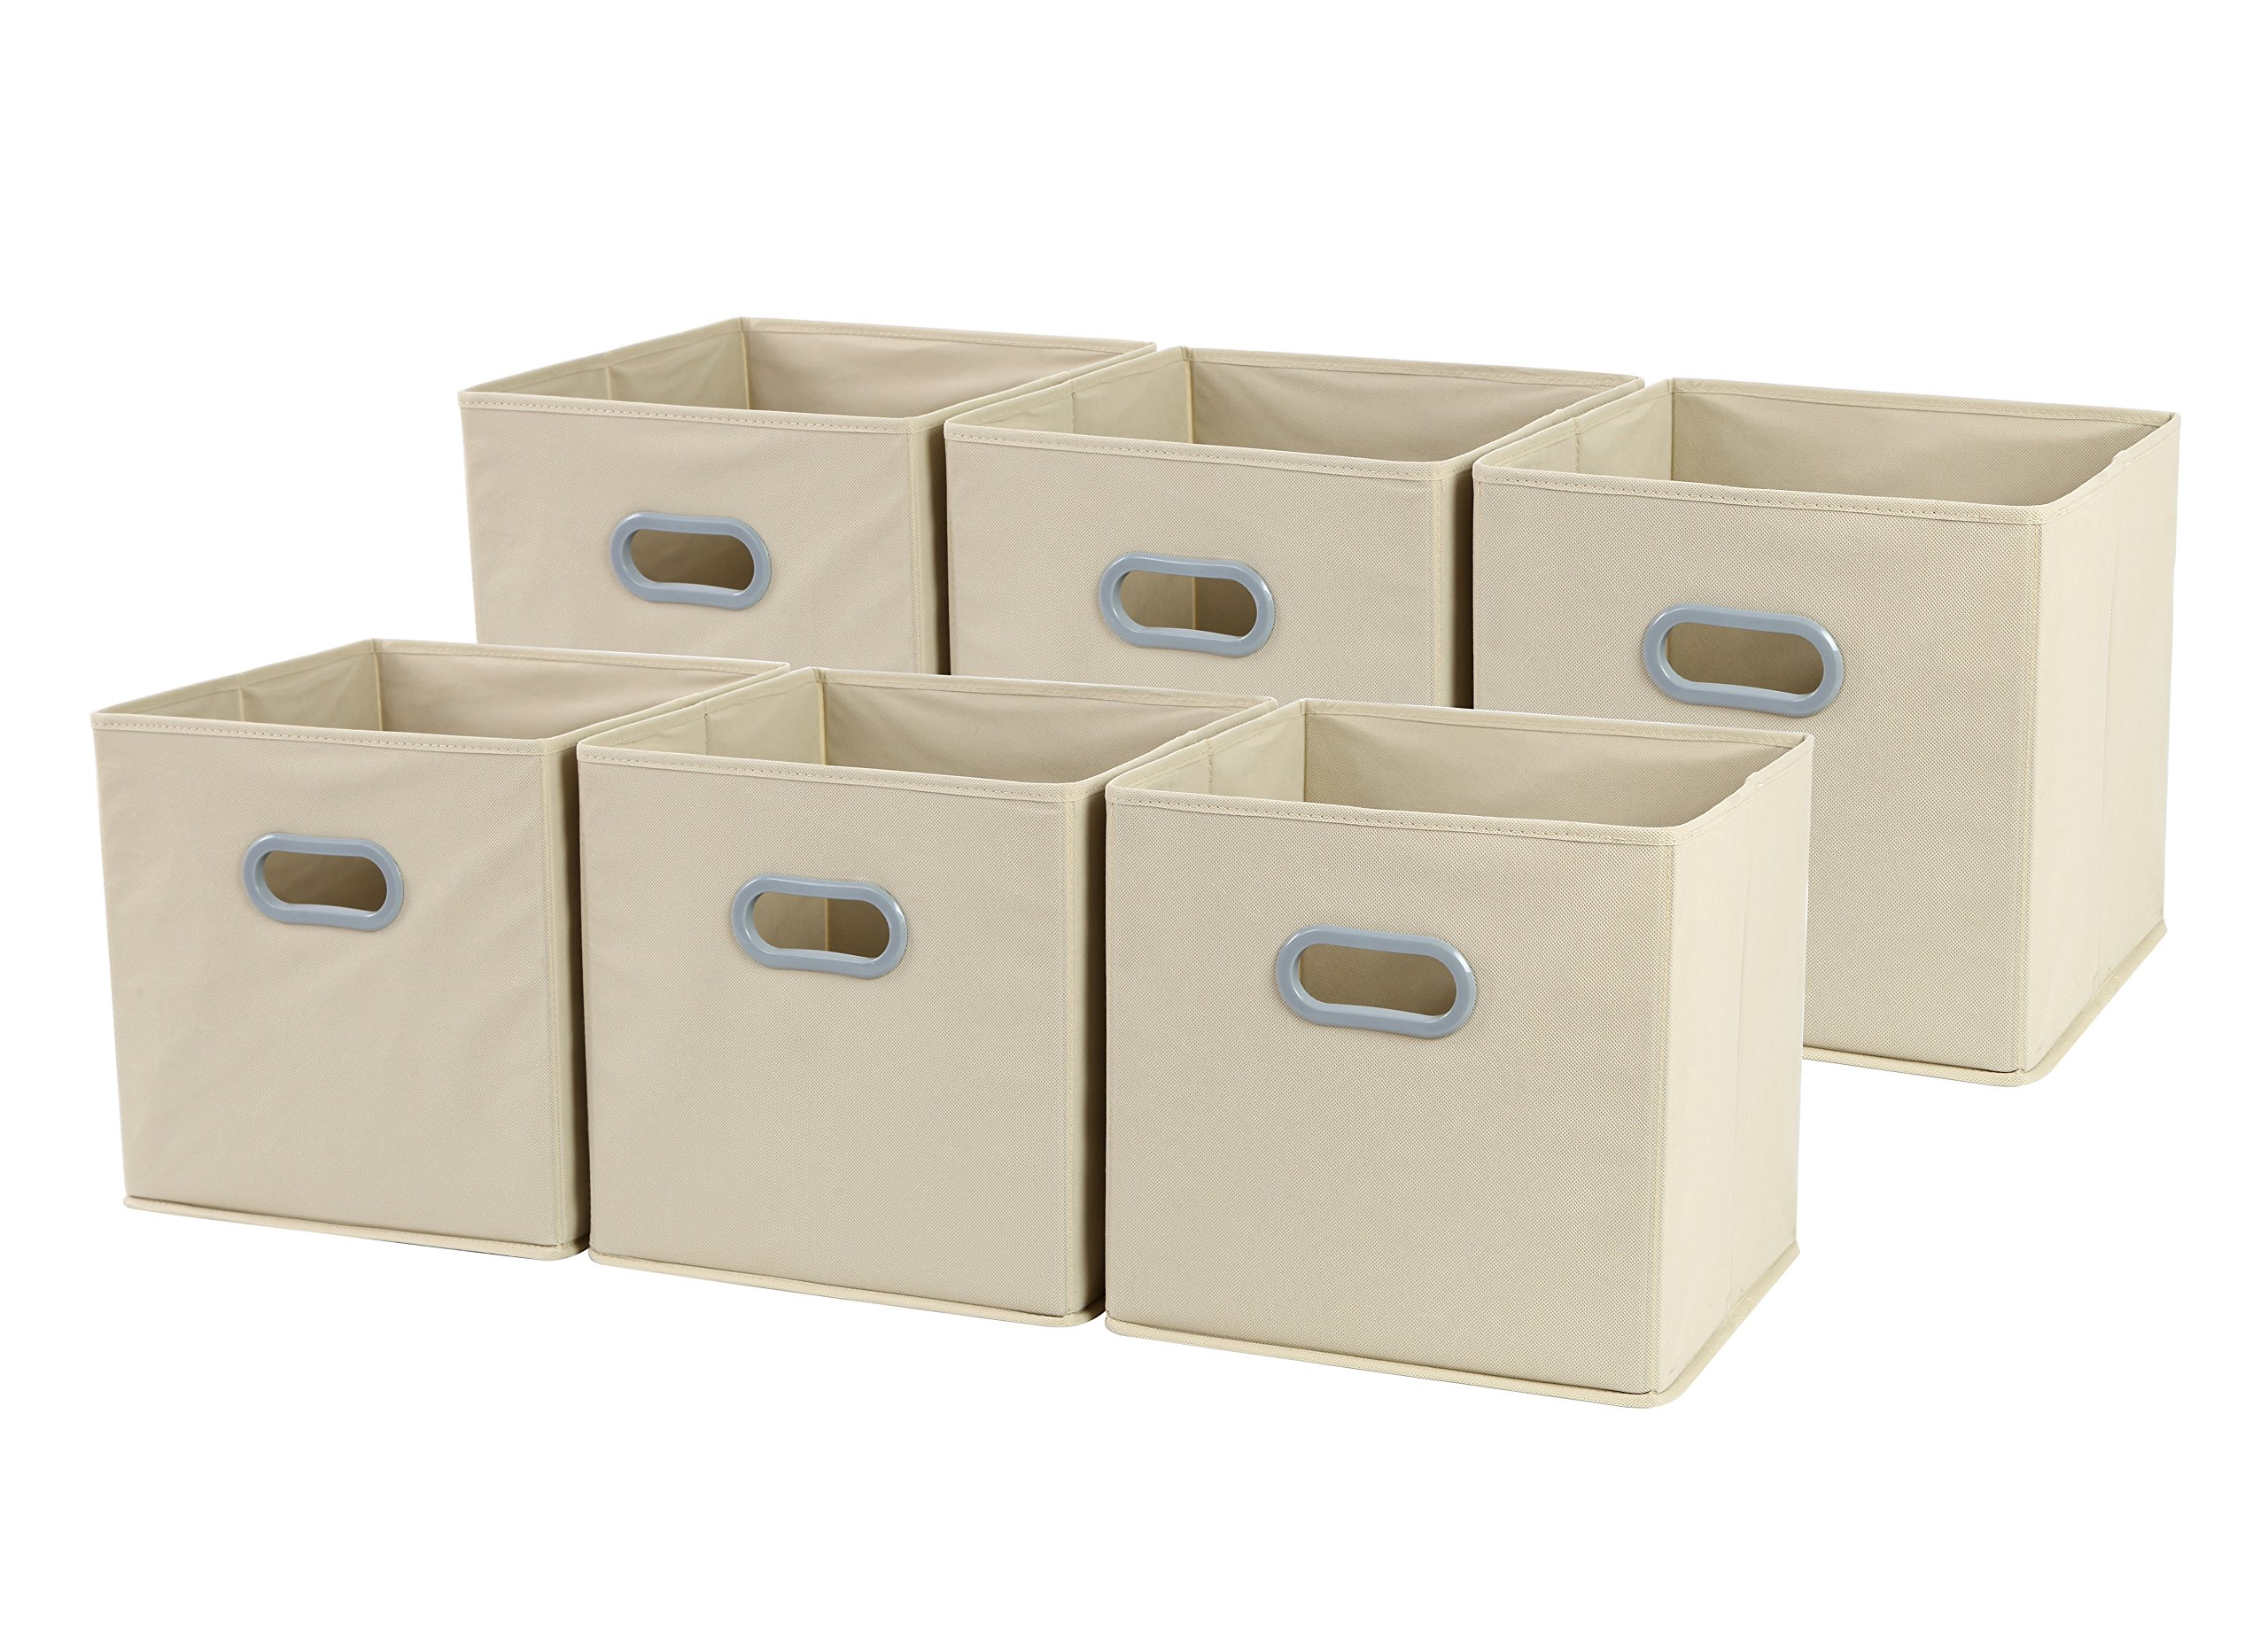 Sodynee New Large Foldable Cloth Storage Cube Basket Bins Organizer Containers Drawers, 6 Pack, 12'' x 12'' x 12'', Beige